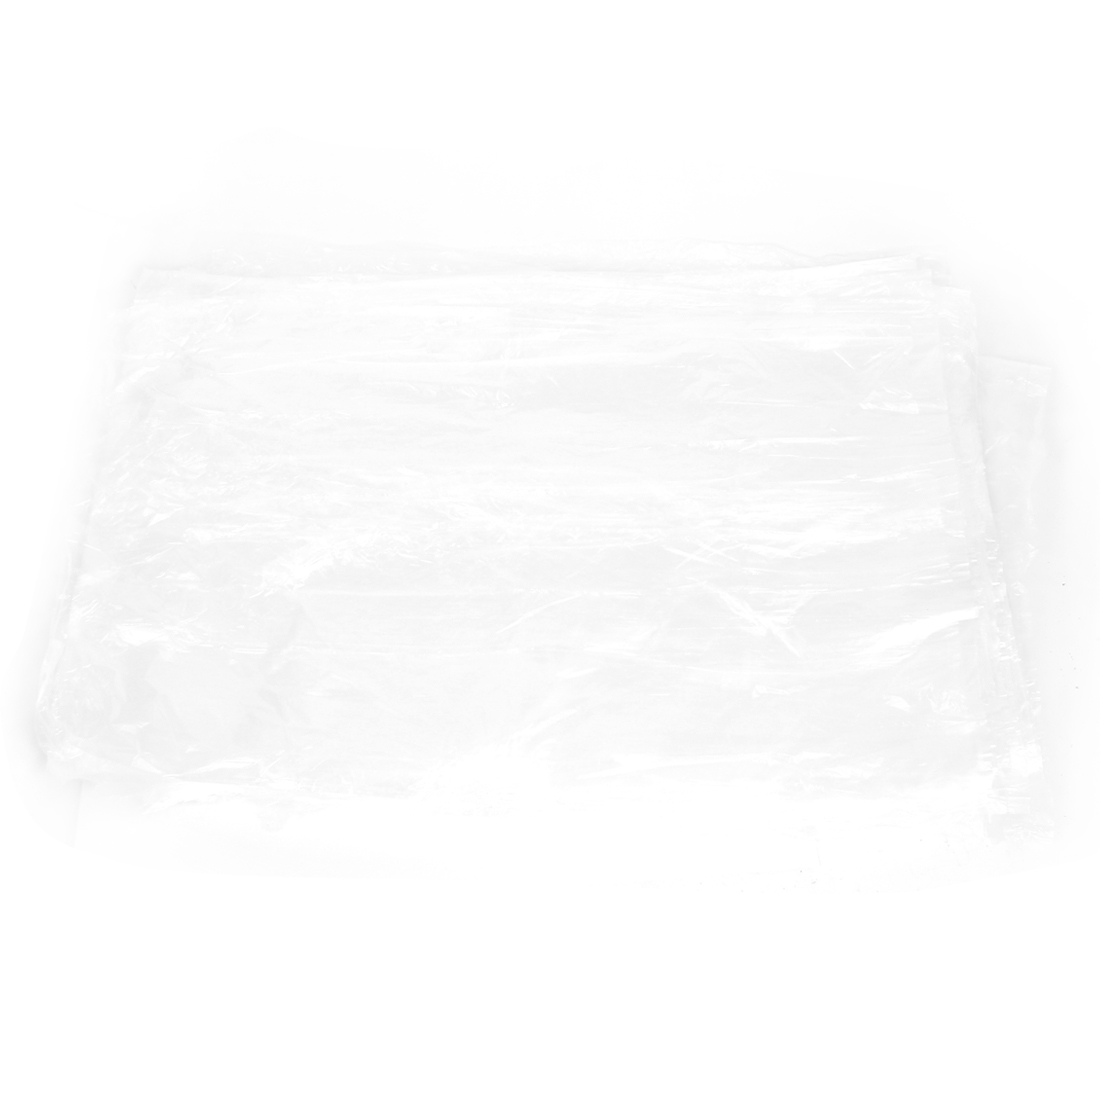 50PCS Bath Spa Pedicure Foot Tub Disposable Liners Bags Clear 52cm x 40cm